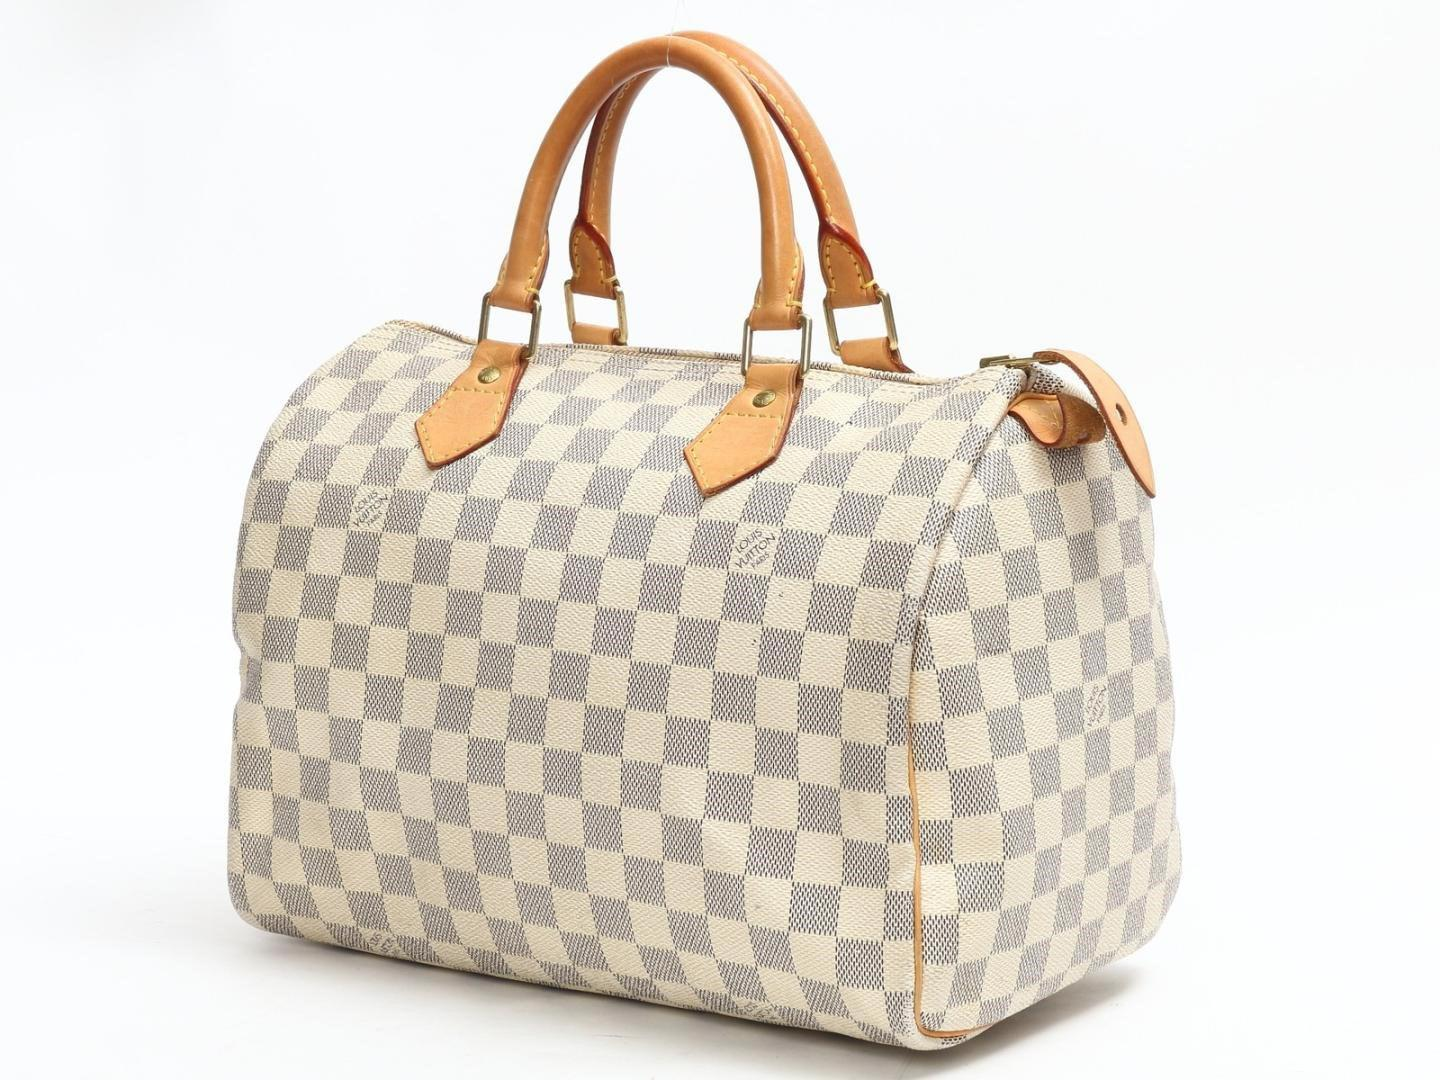 a52a8c03cffb Lyst - Louis Vuitton Speedy 30 Handbag Damier Azur N41533 in White